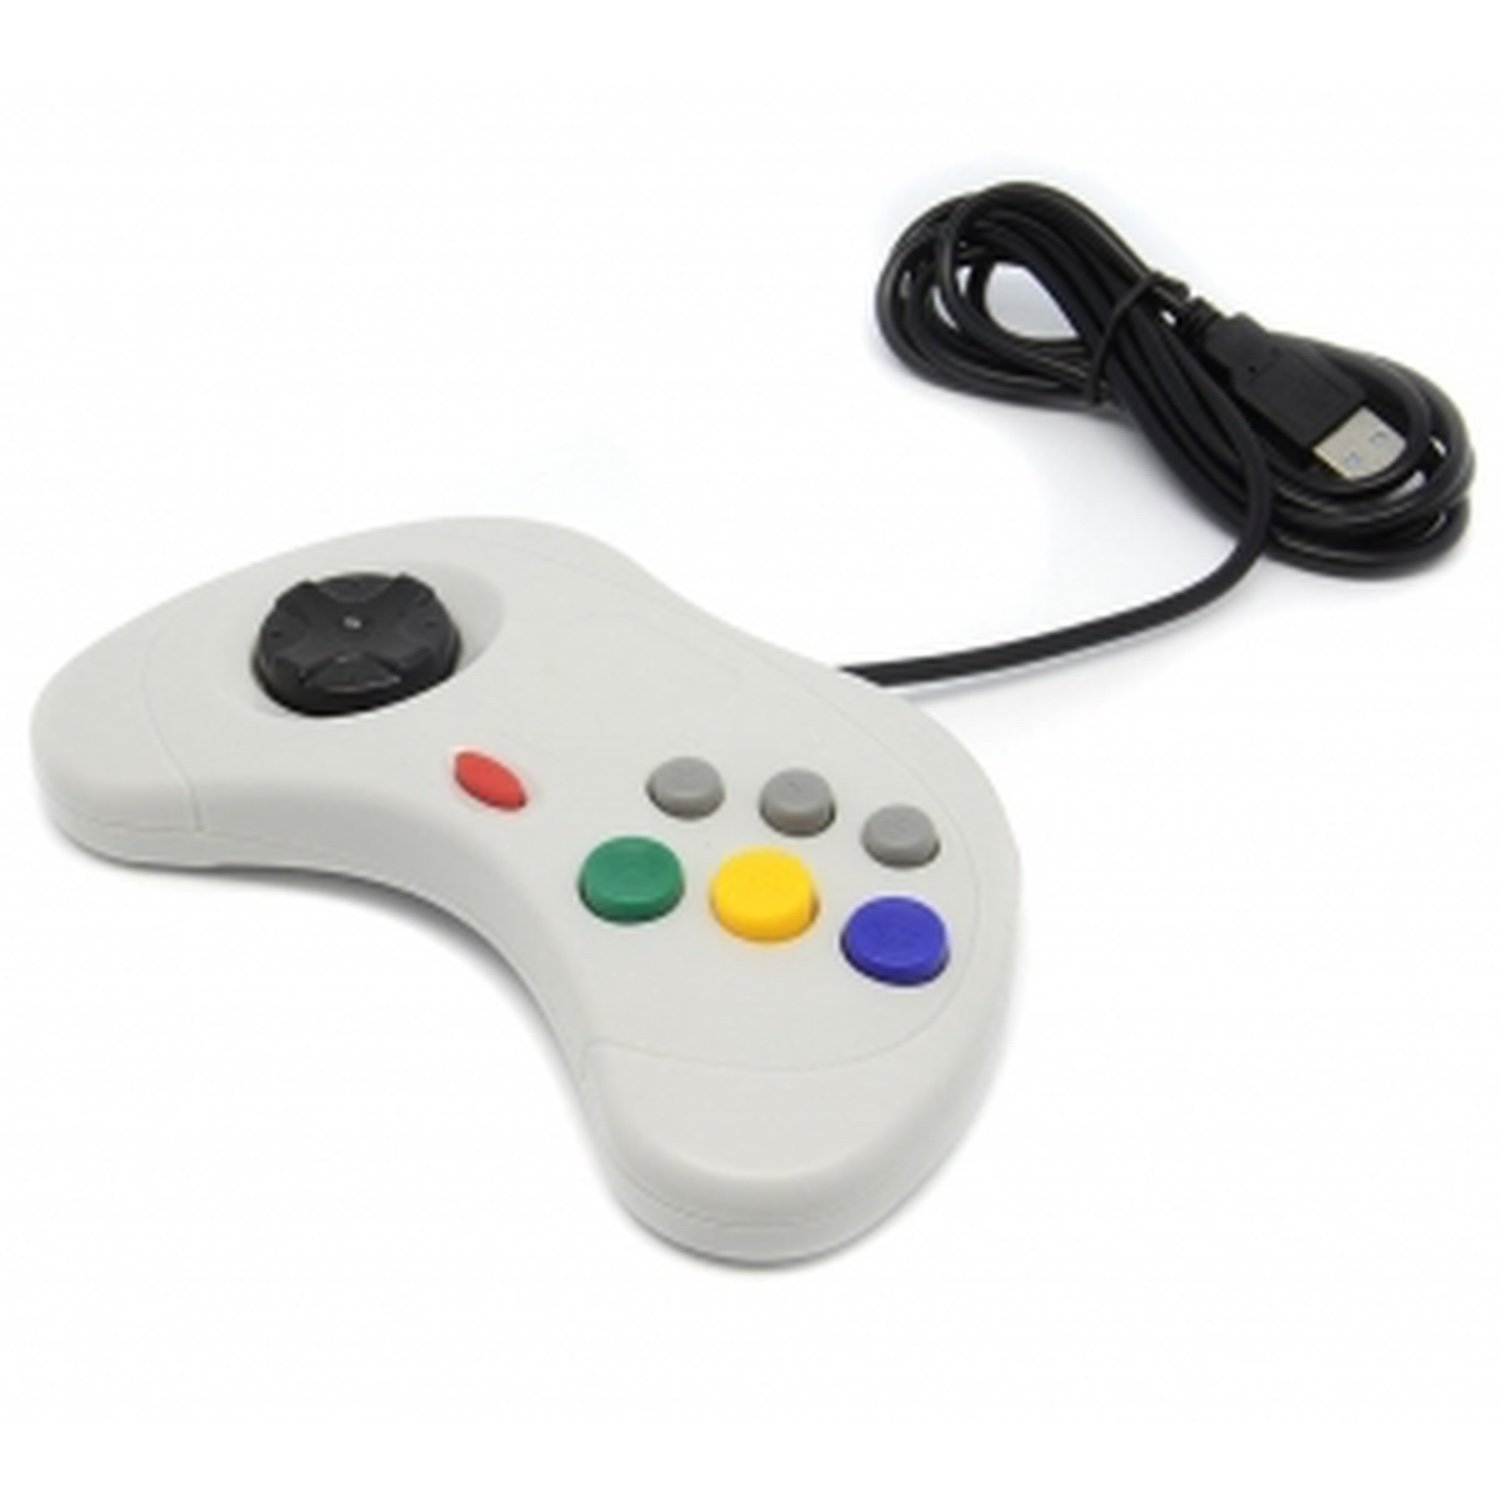 GREY SEGA SATURN STYLE PC USB CONTROLLER FOR PC AND MAC temper usb thermometer temperature recorder for pc laptop